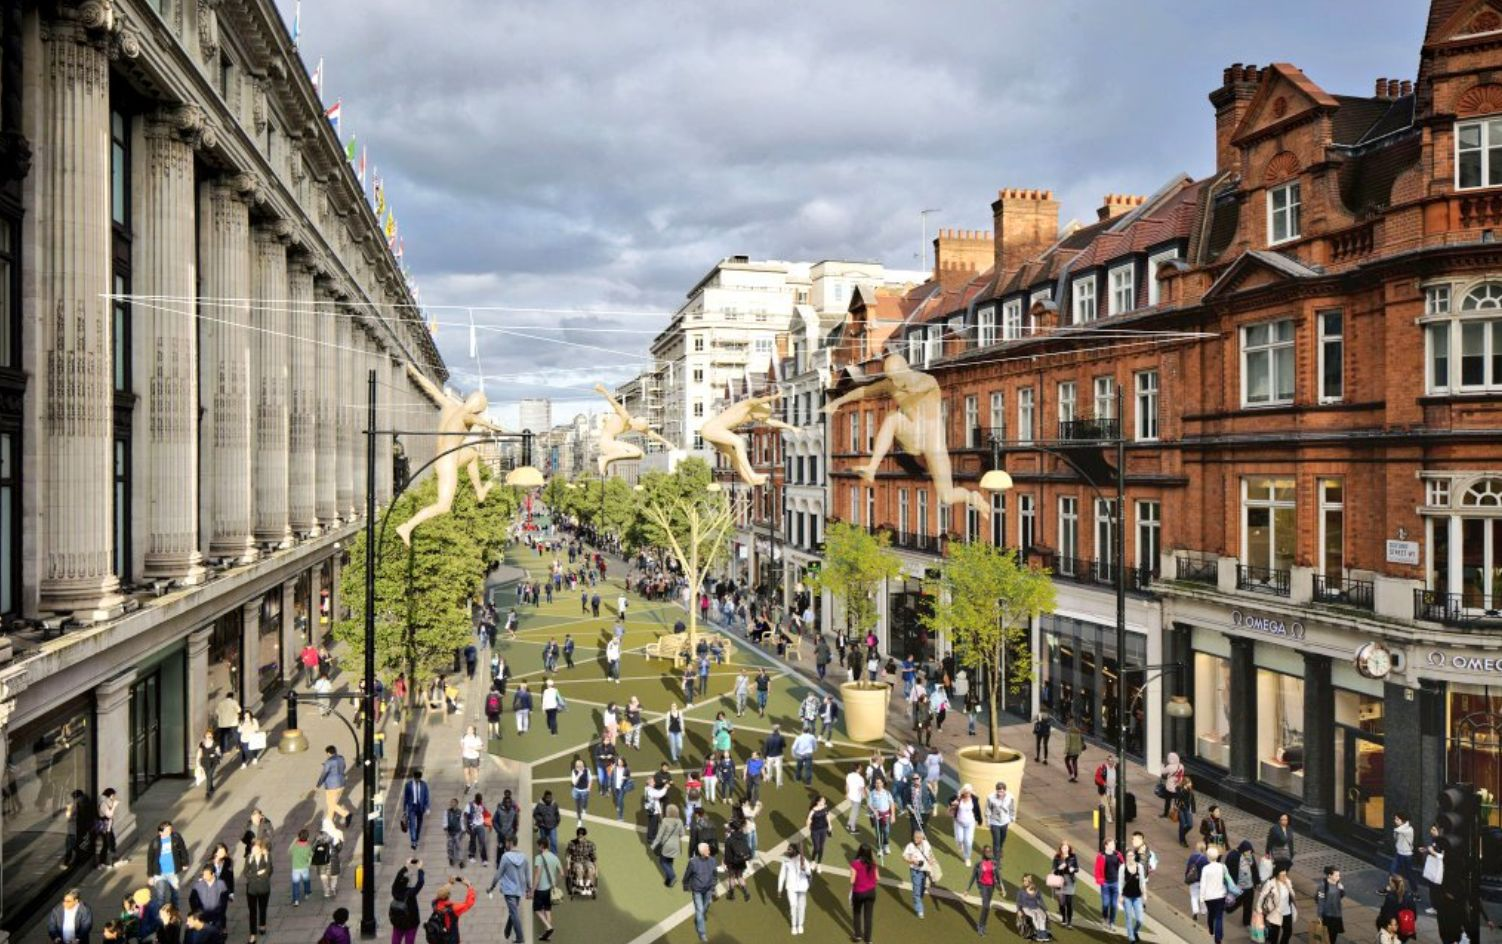 Large parts of London's Oxford Street could be pedestrianised by